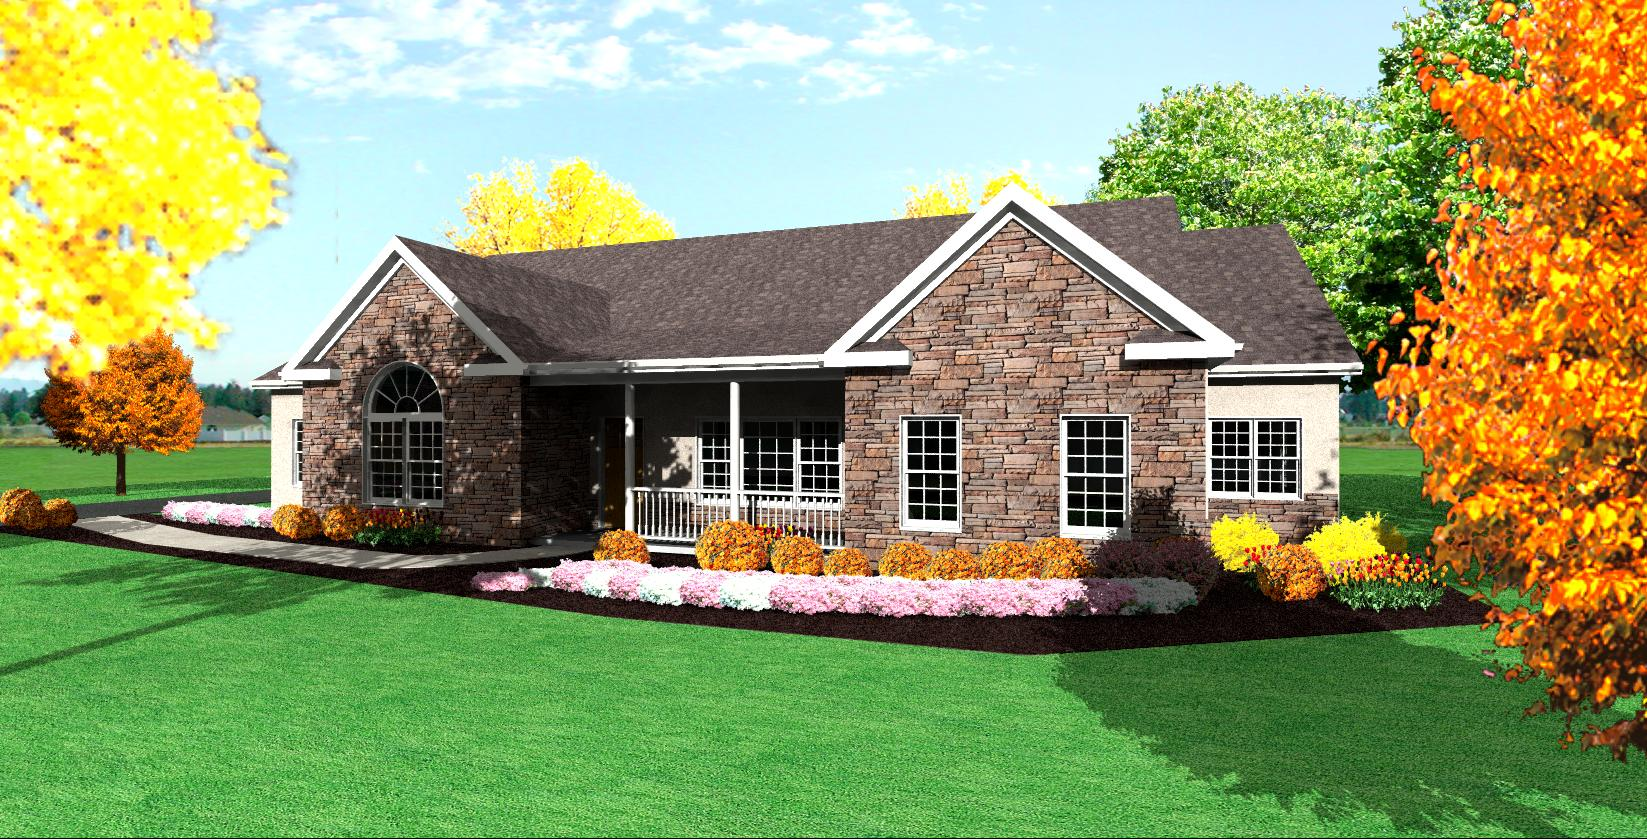 One story ranch house plans simple one story houses for Ranch house designs blog